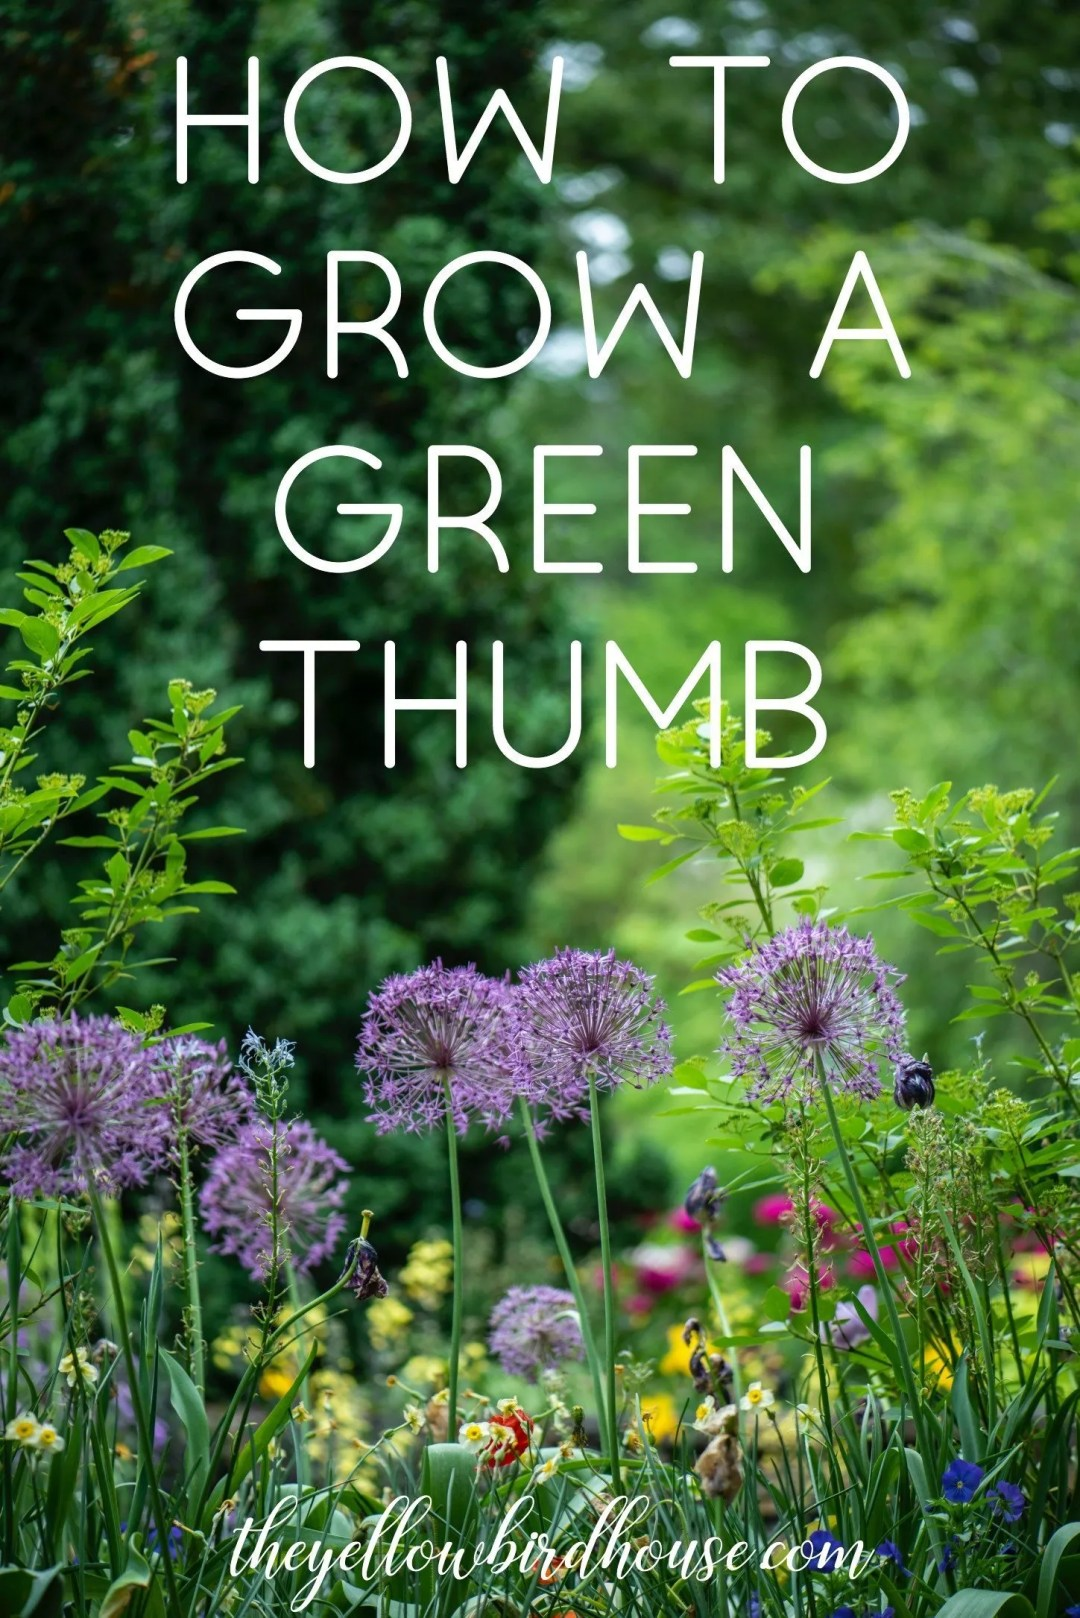 How to Grow a Green Thumb. Try some of these steps to cultivate your gardening skills!